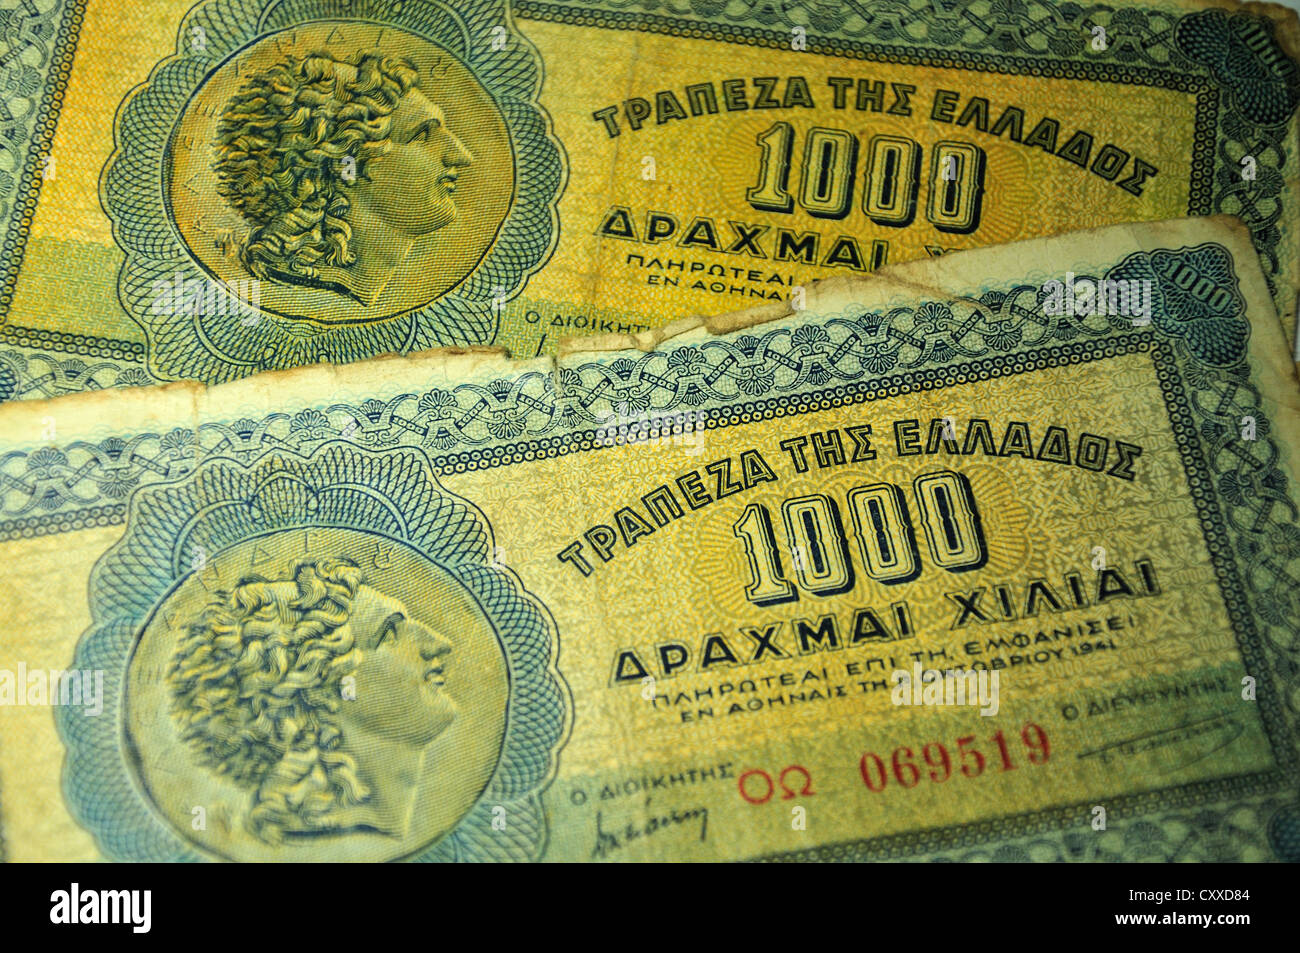 1000 Drachma Greek banknotes, 1941 - Stock Image